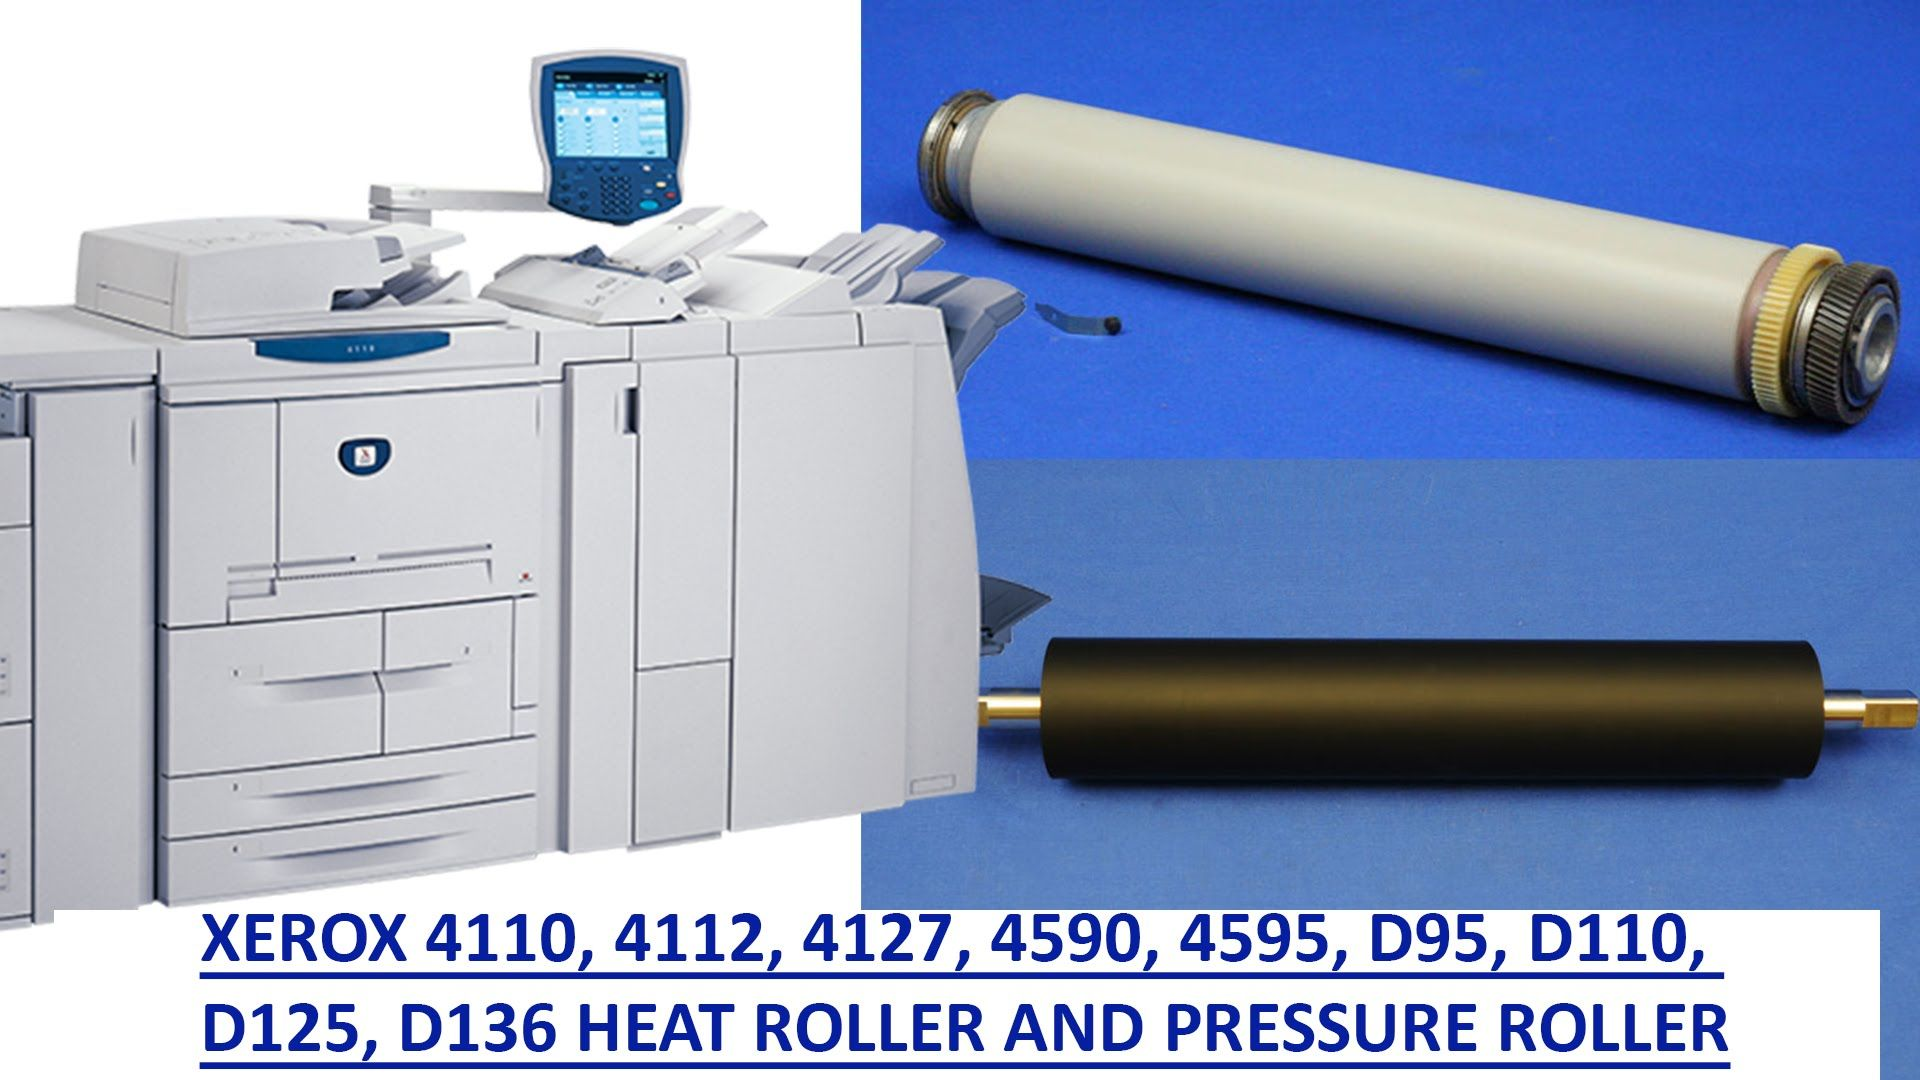 Fuser Heat And Pressure Roller For The 4110 4112 4127 4590